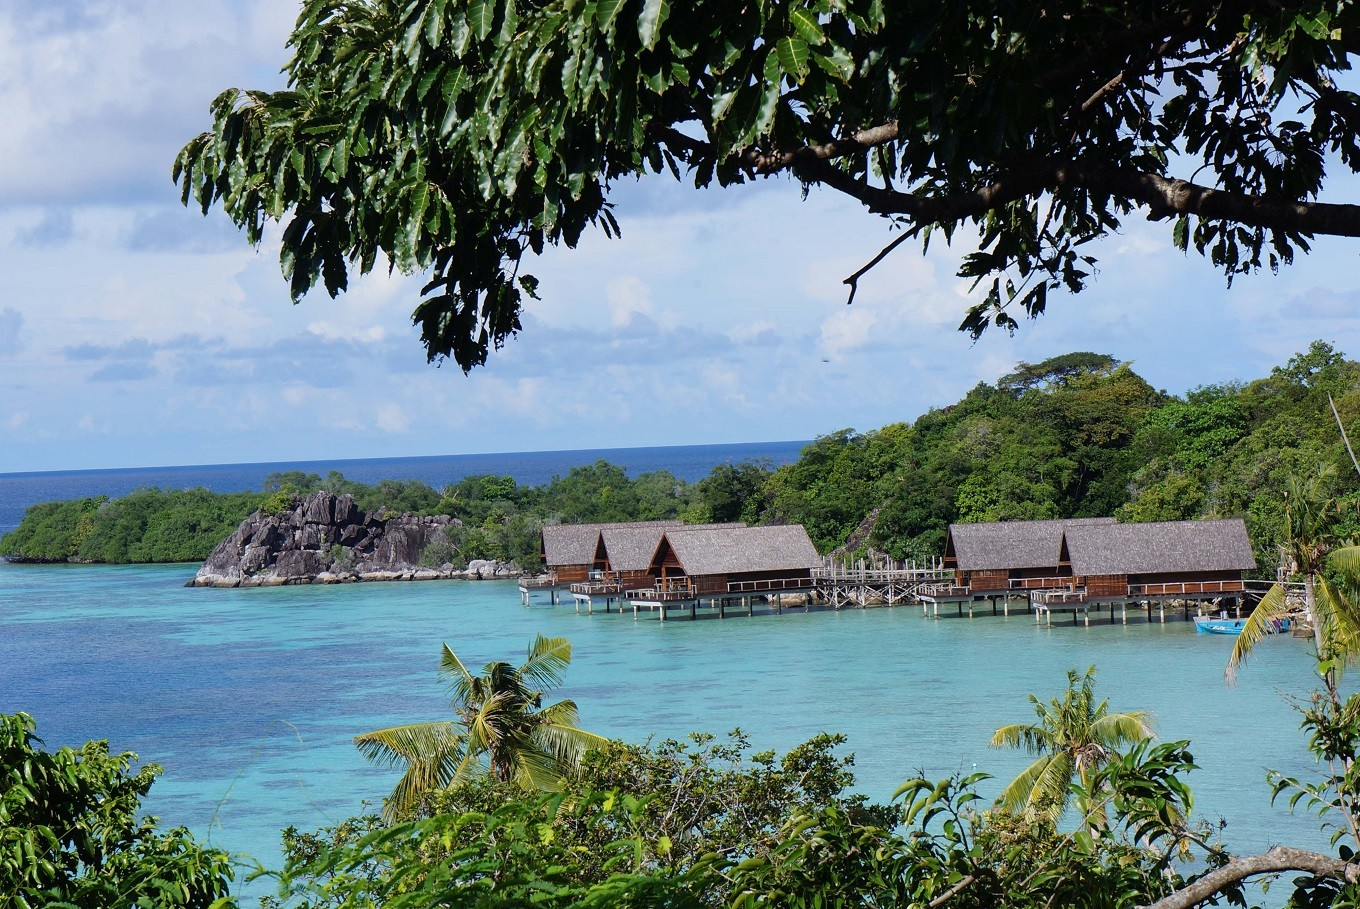 Bawah Island of Anambas Islands nominated for most popular diving spot